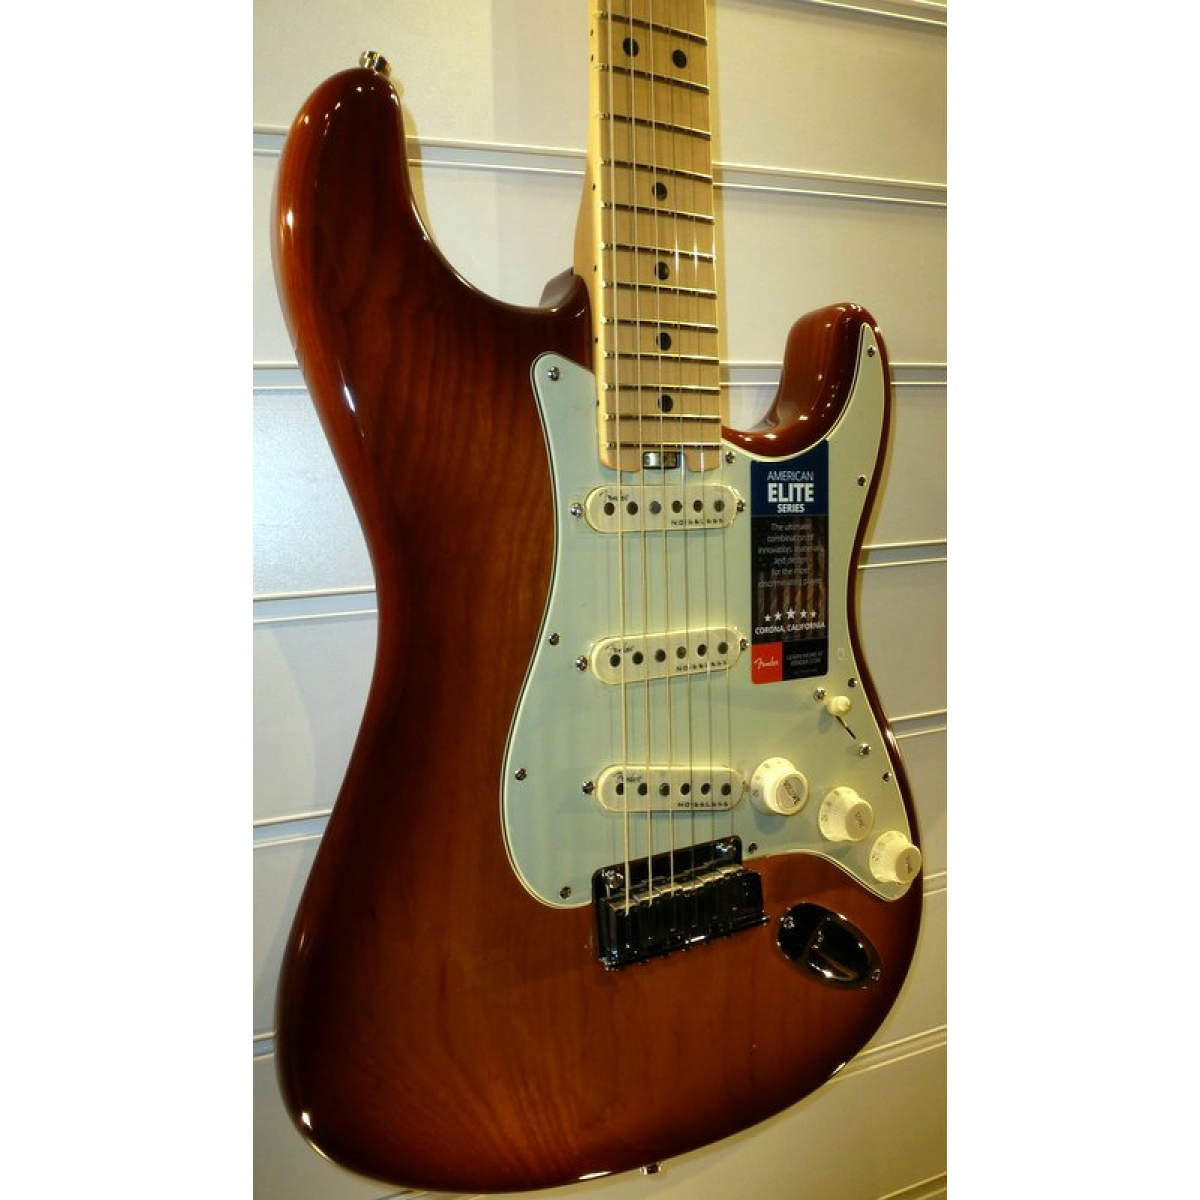 fender american elite stratocaster tobacco sunburst secondhand at promenade music. Black Bedroom Furniture Sets. Home Design Ideas